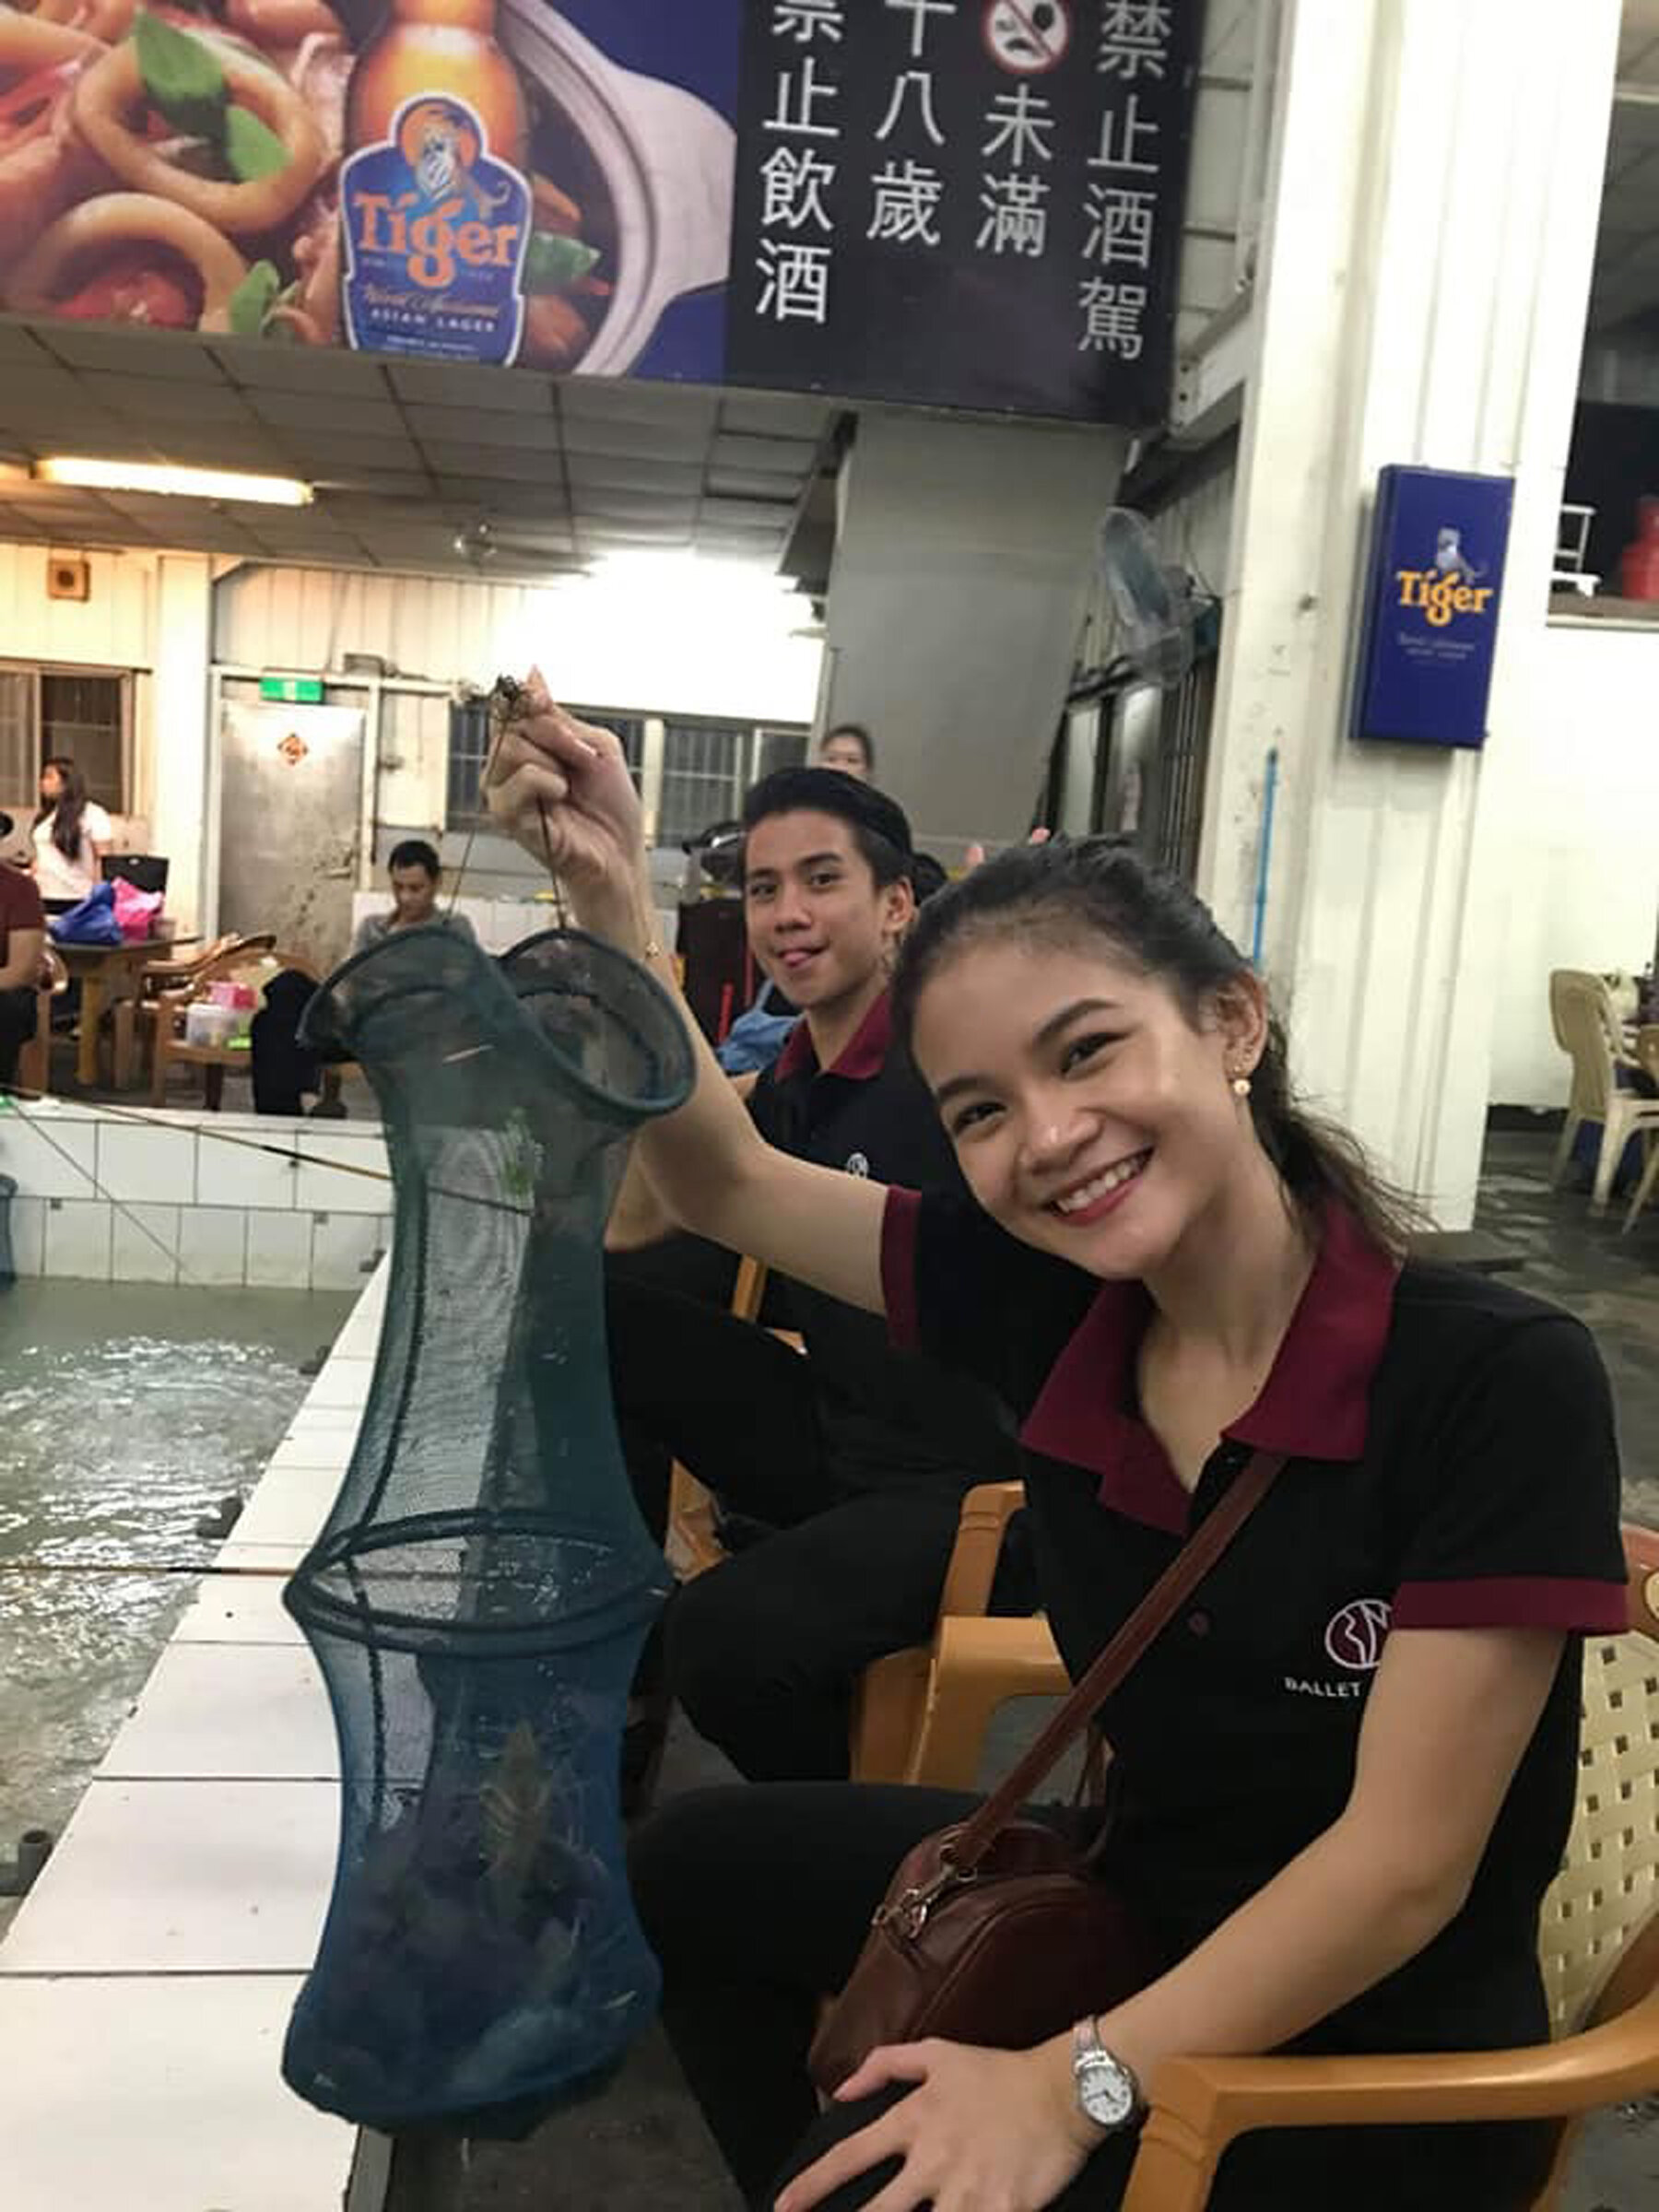 Shaira shows off her catch of shrimp for dinner in a local restaurant.